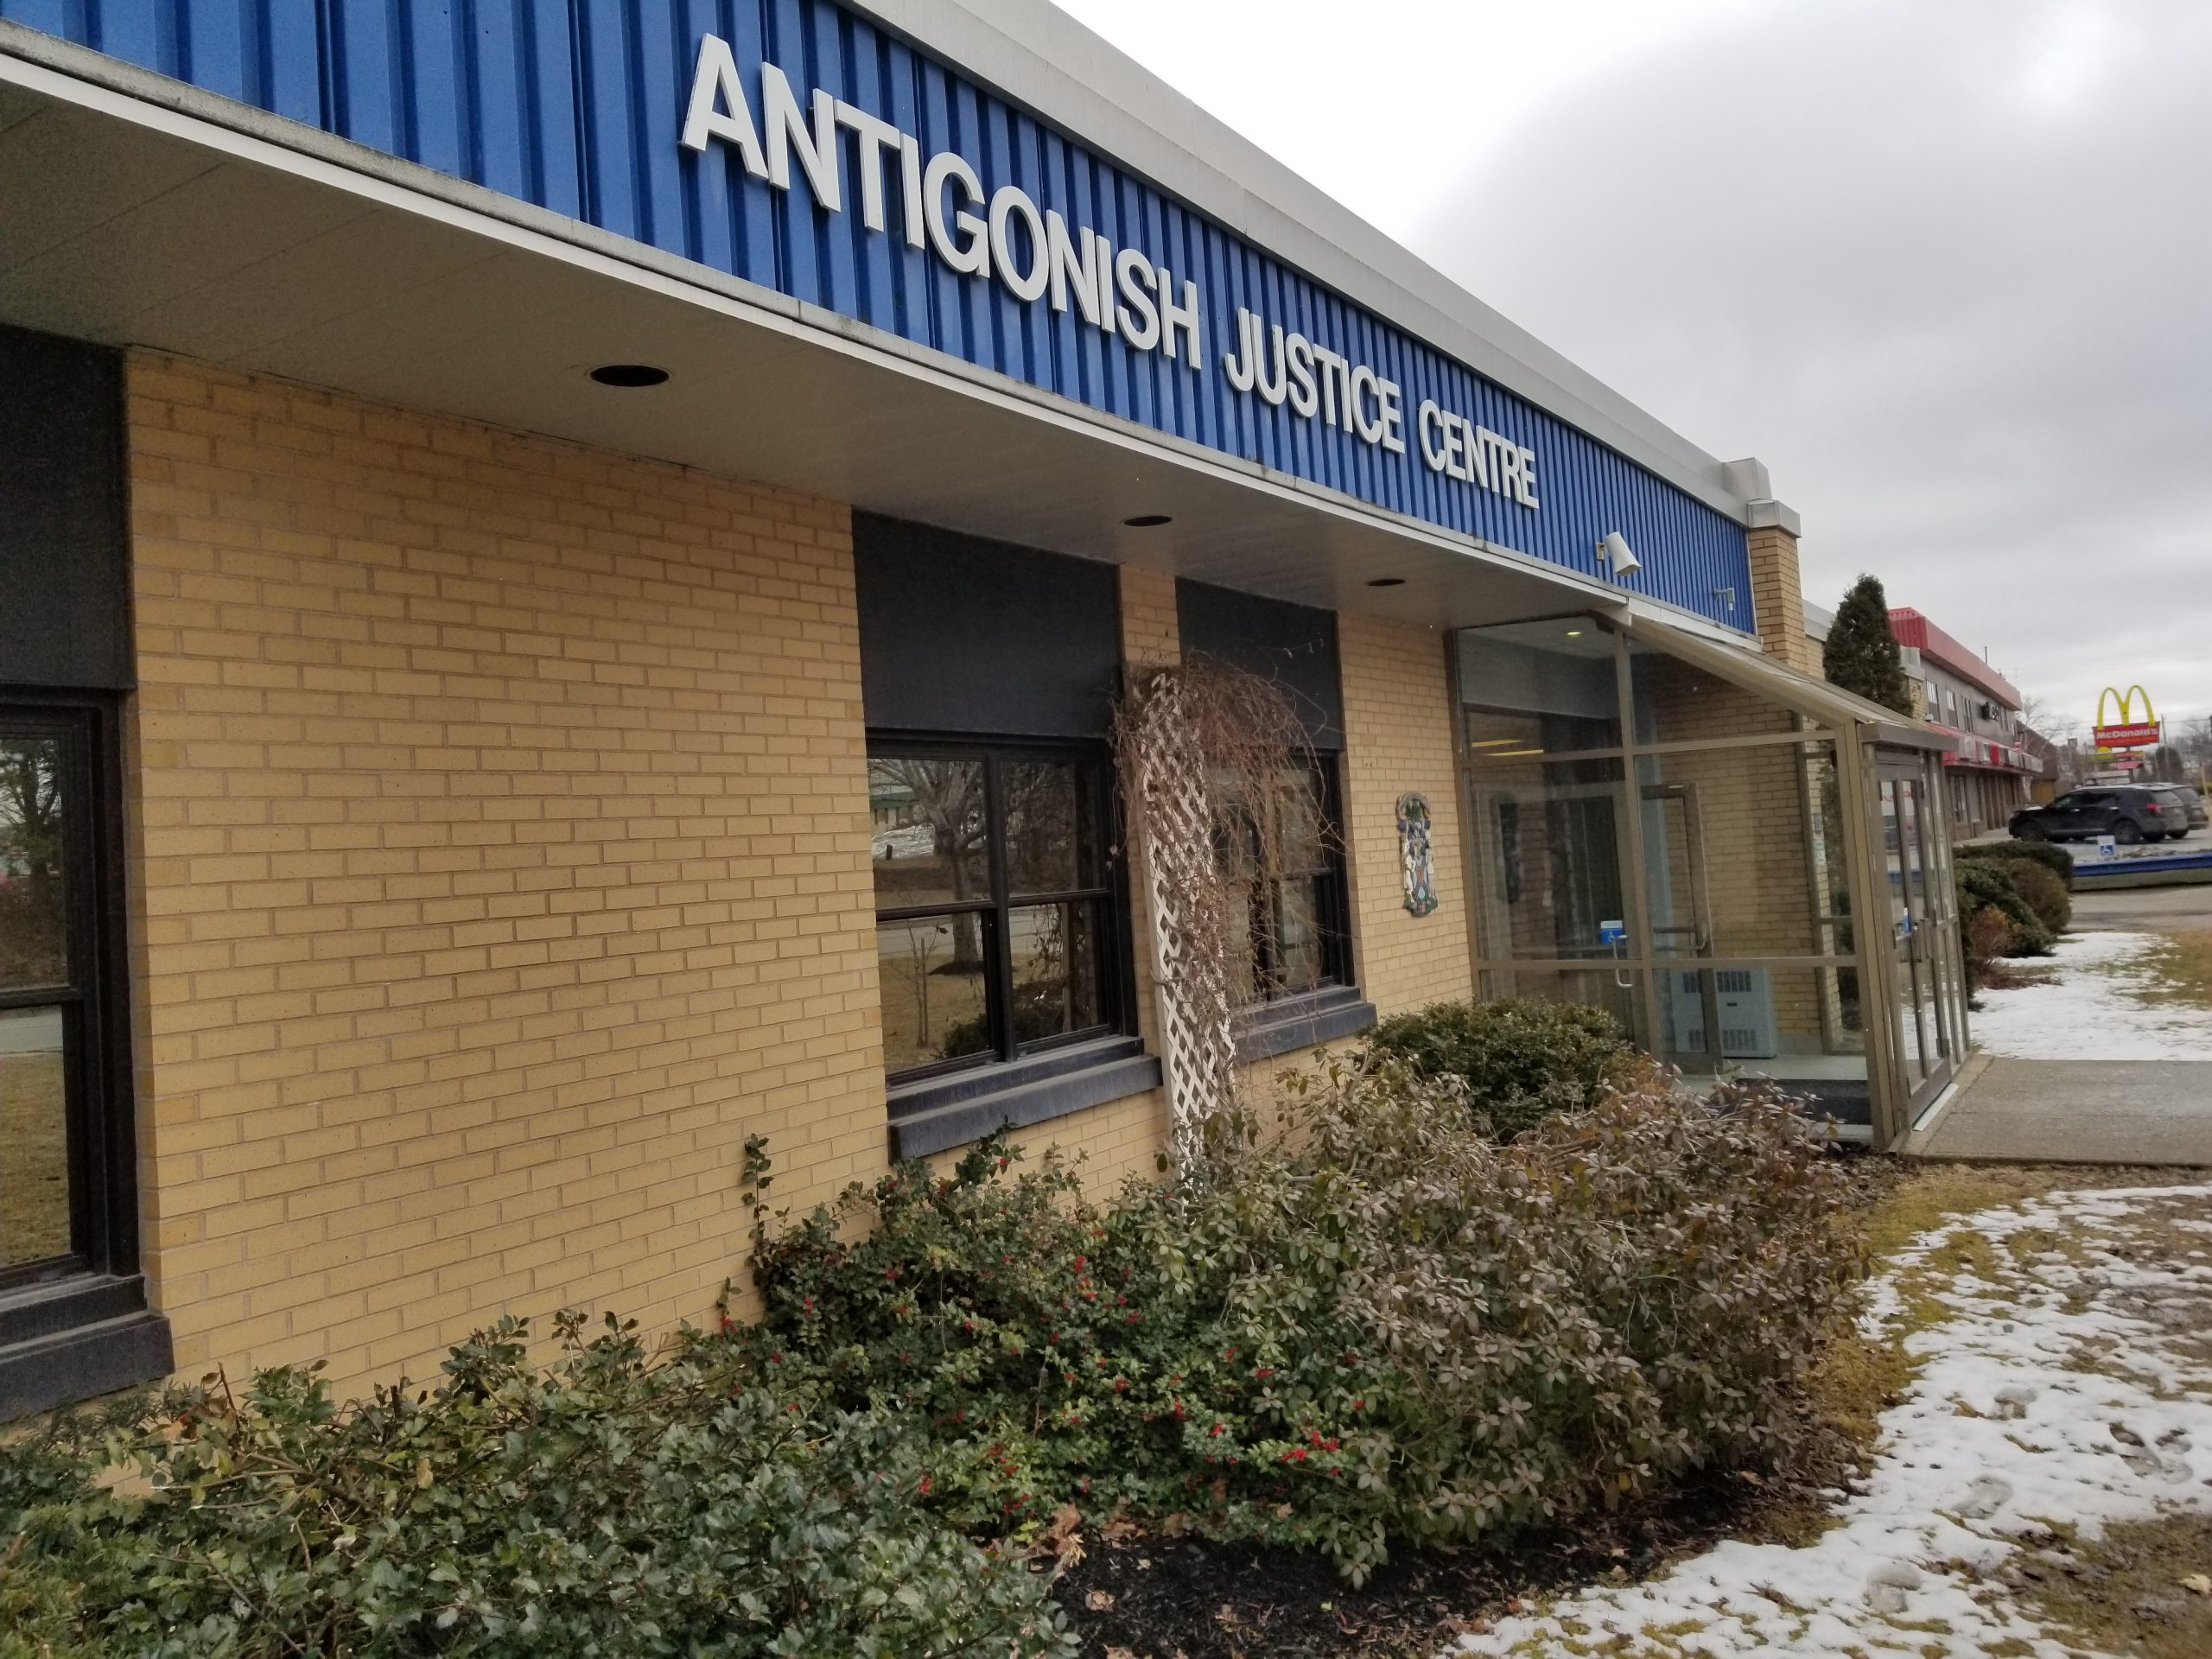 Man charged following reported gun threat in Antigonish has case adjourned